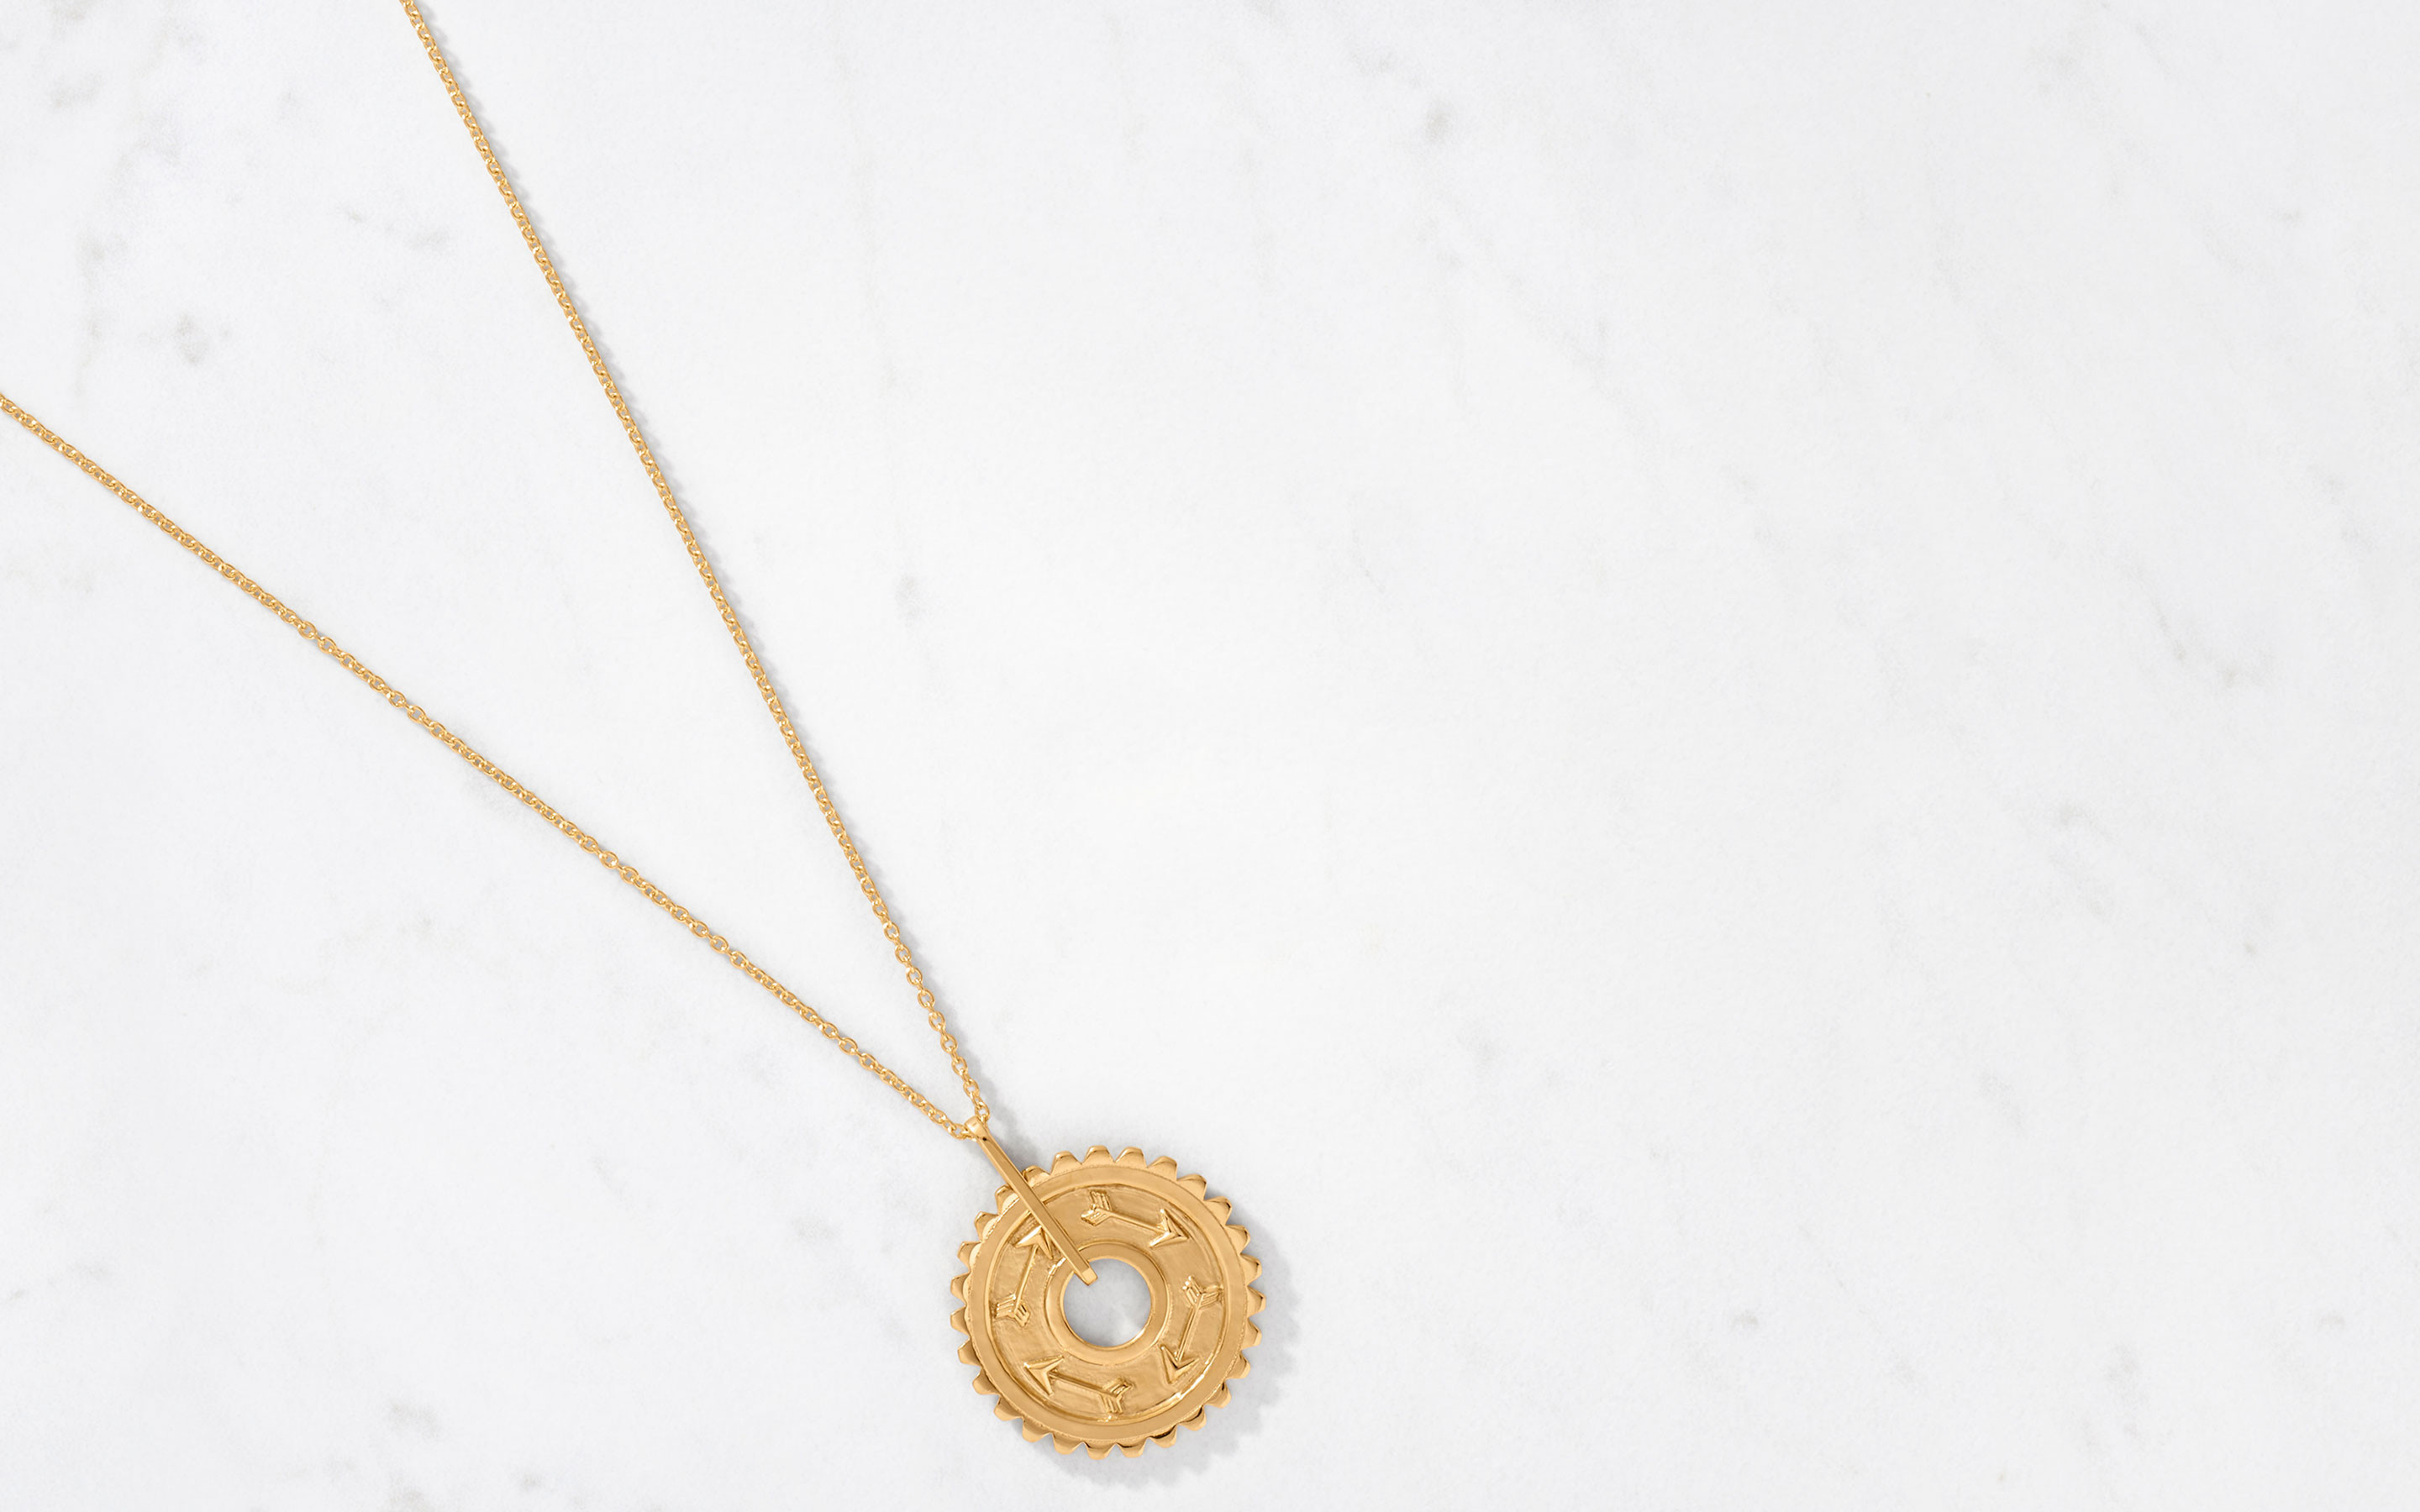 refined 22 karat gold talisman necklace with a spiral of arrows